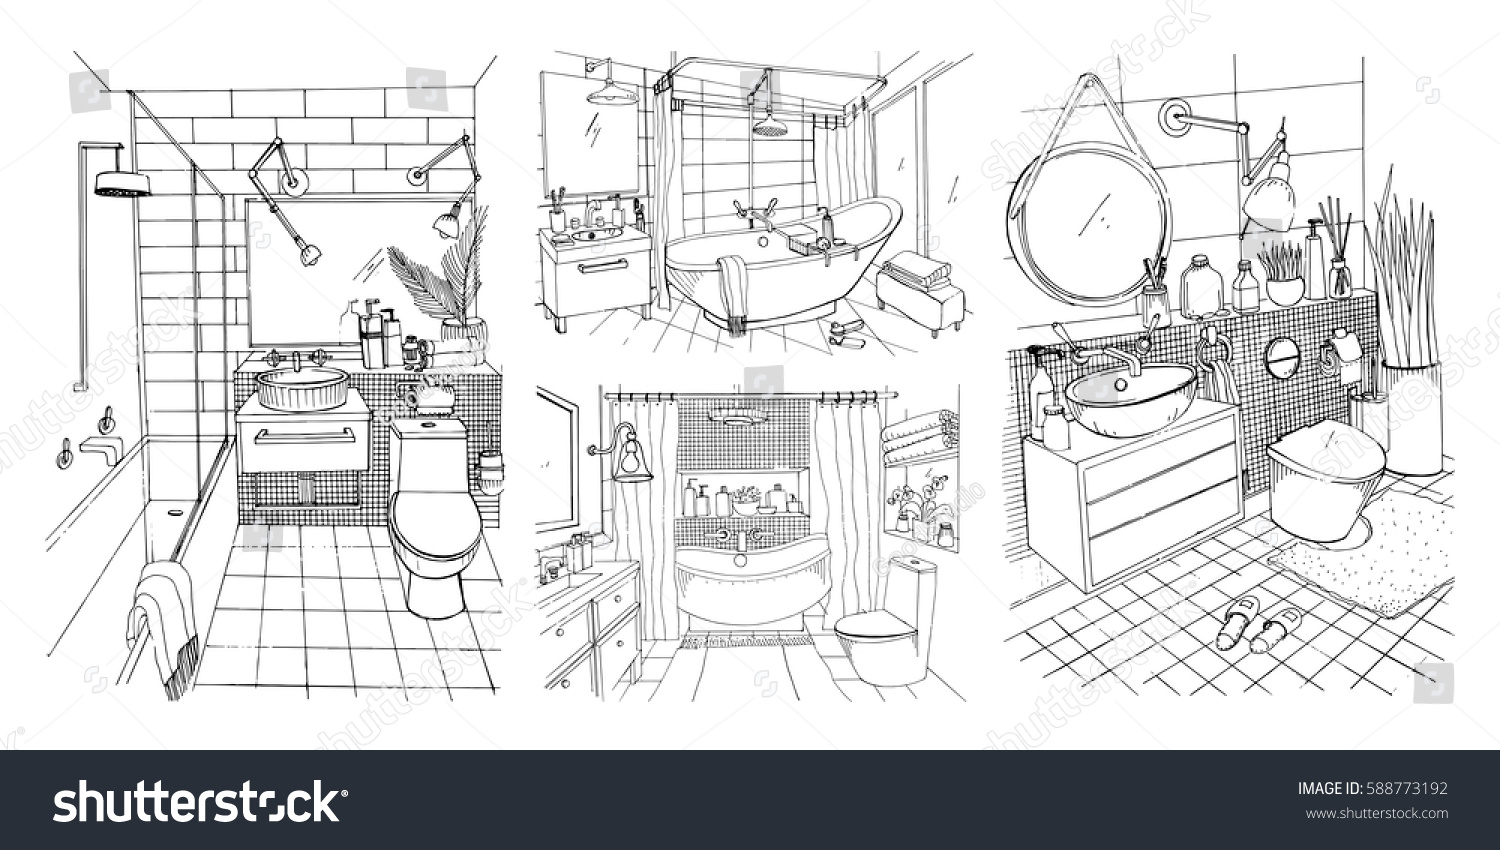 Hand Drawn Modern Bathroom And Toilet Interior Design Collection Contour Vector Sketch Illustrations Set